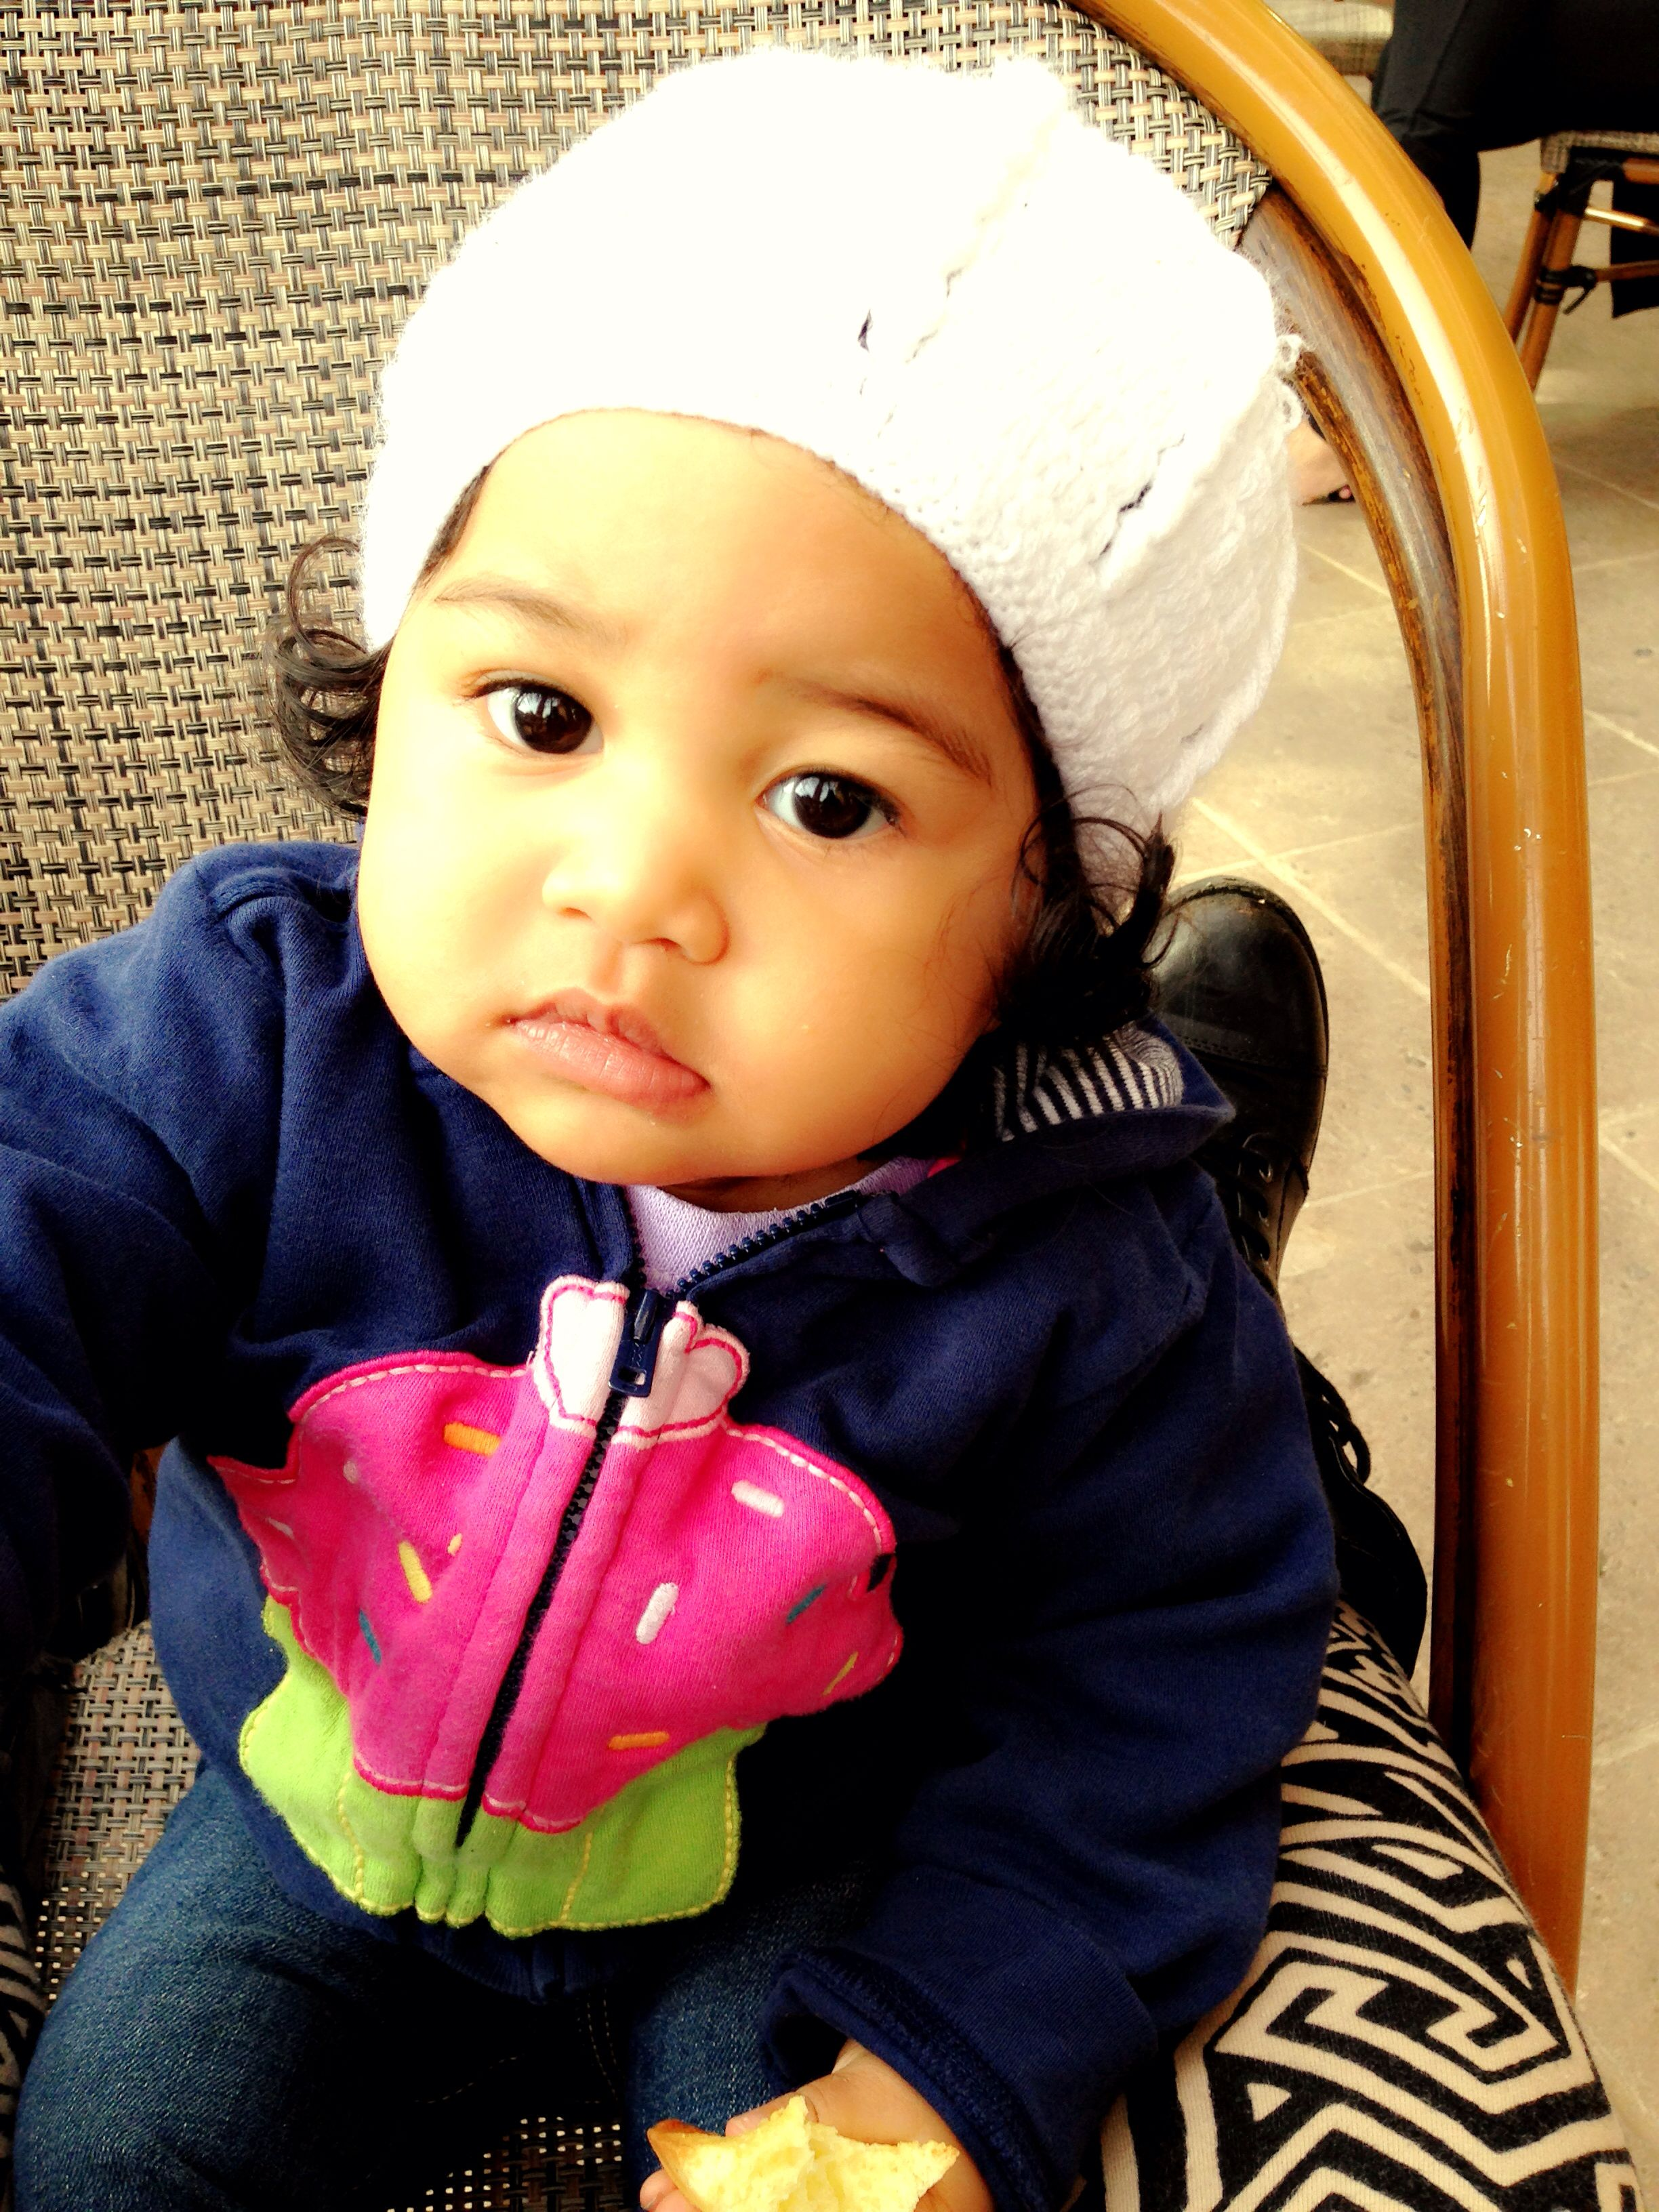 Mixed Baby Filipino Chinese Spanish Native American